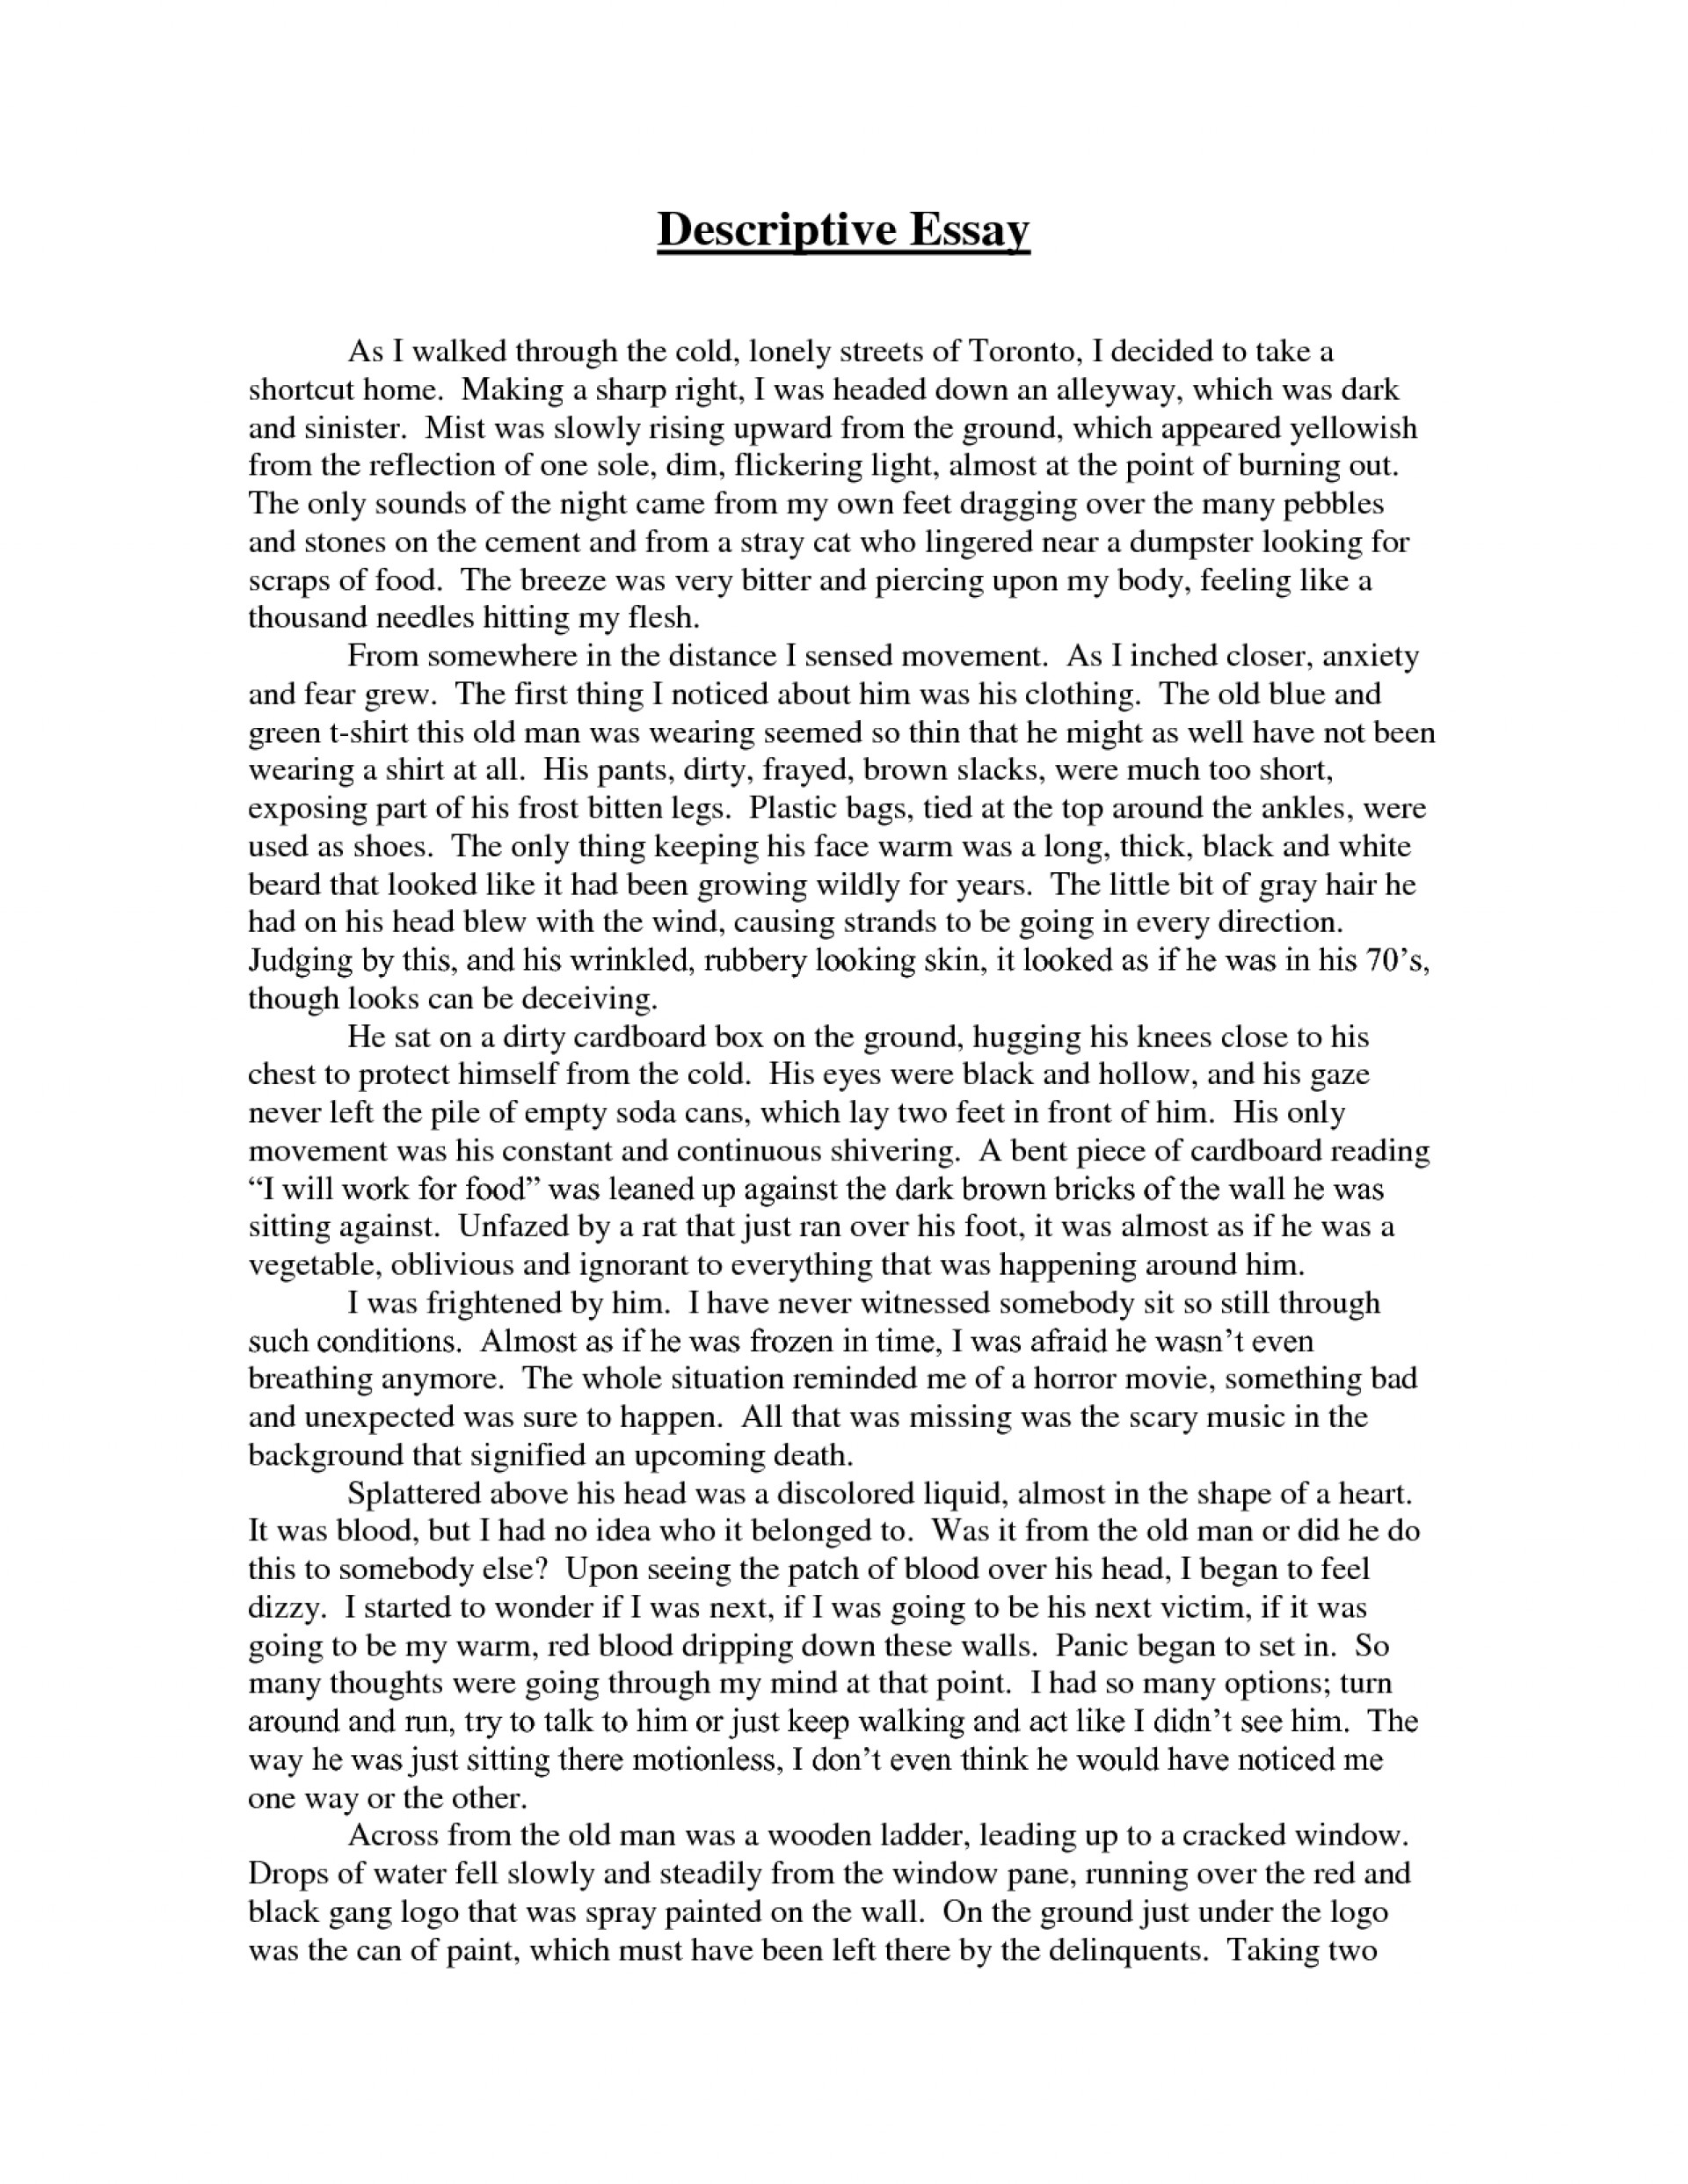 003 Example Of Descriptive Essay Discriptive Cover Letter For How Write Writing Paragraph About Place To In Remarkable A Your Mother Painting Picture Pdf 1920